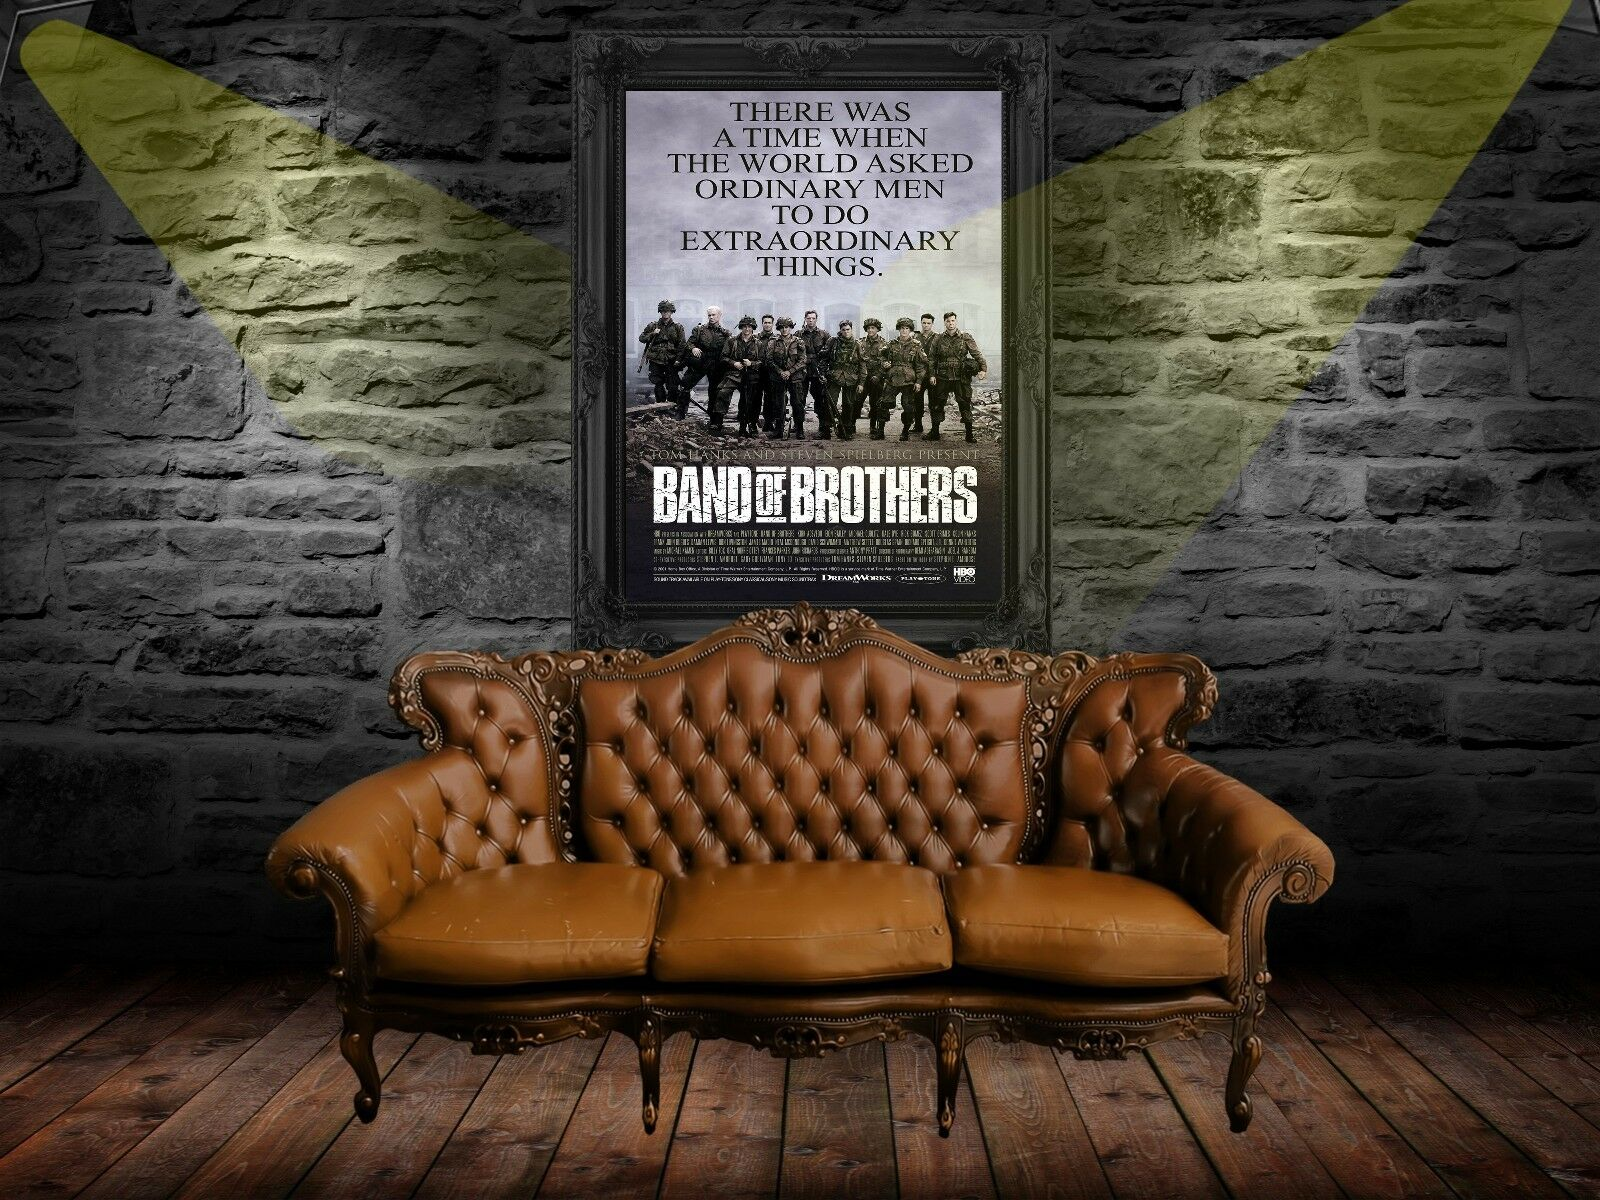 Band of Brothers 2001 Movie Poster Print A0-A1-A2-A3-A4-A5-A6-MAXI 996 Kunstplakate